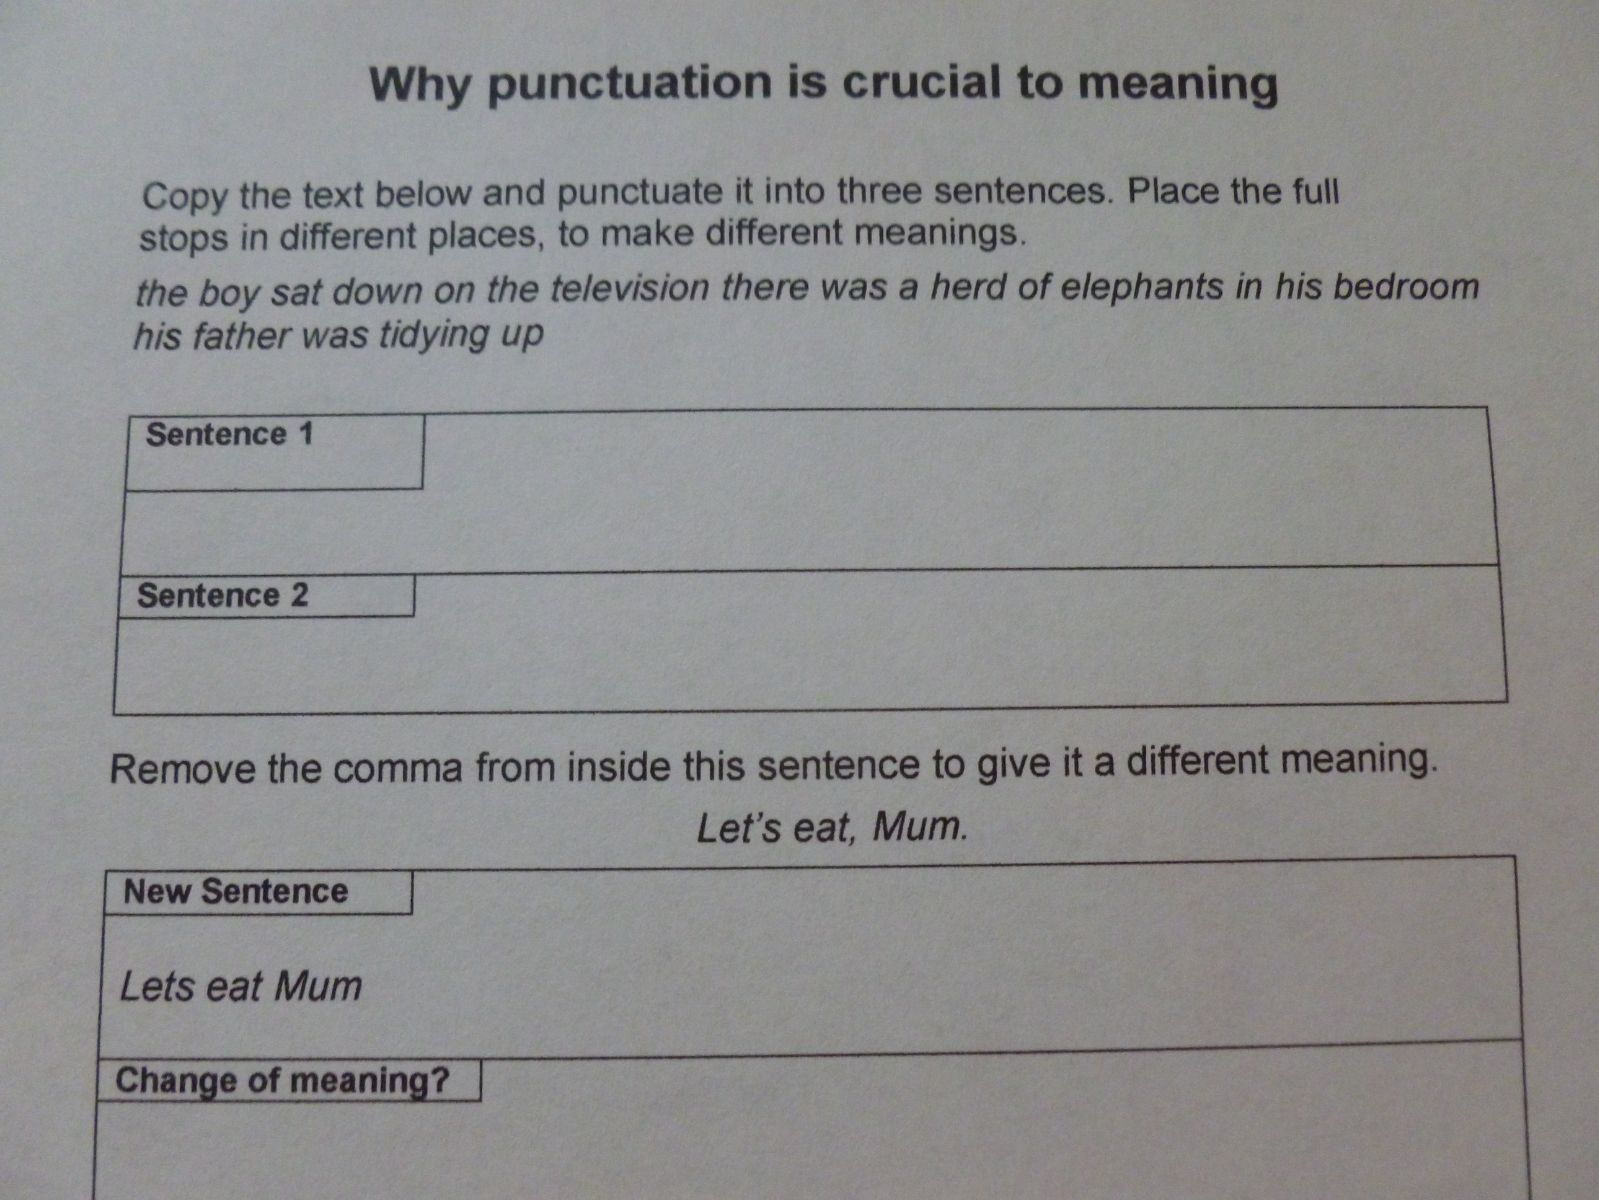 Funny examples of how punctuation changes meaning.